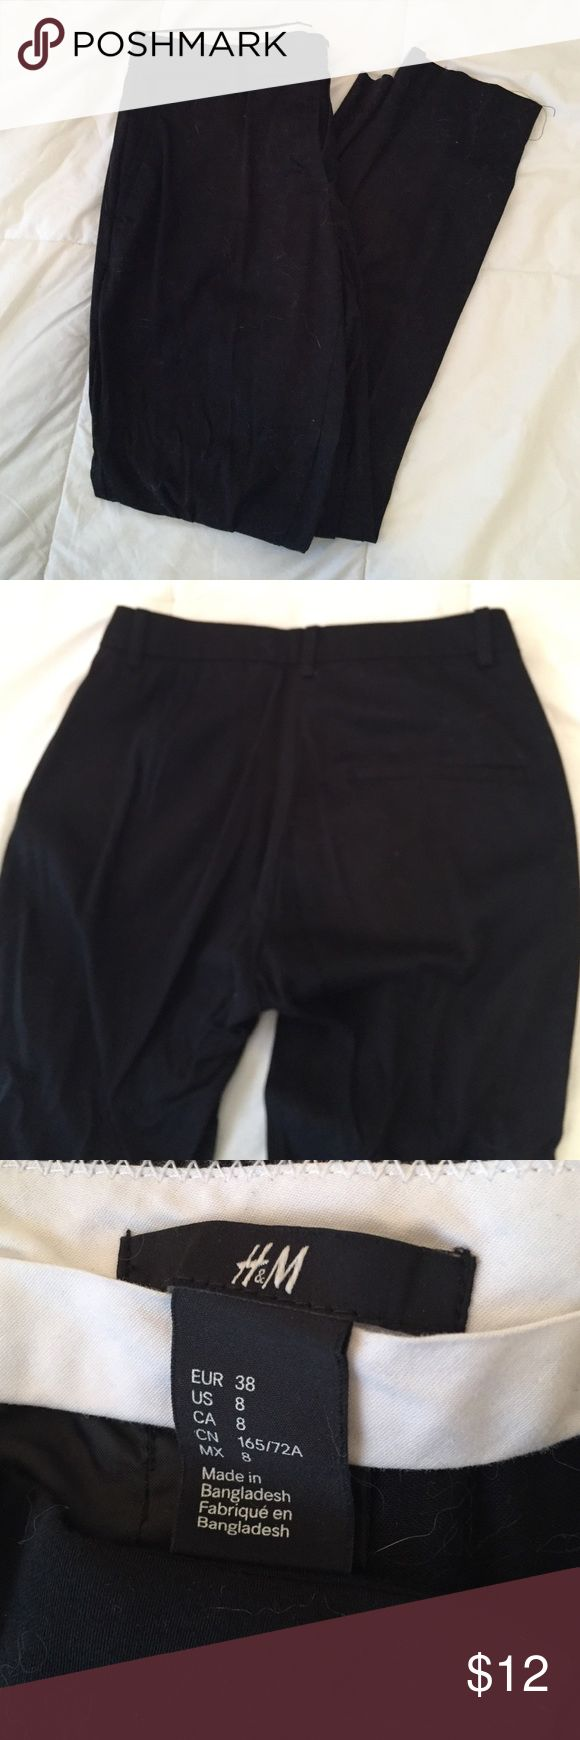 H&M Black Cropped Trousers Size8 Nice and soft dress pants, straight leg cropped. Rarely worn. Size 8 H&M Pants Trousers